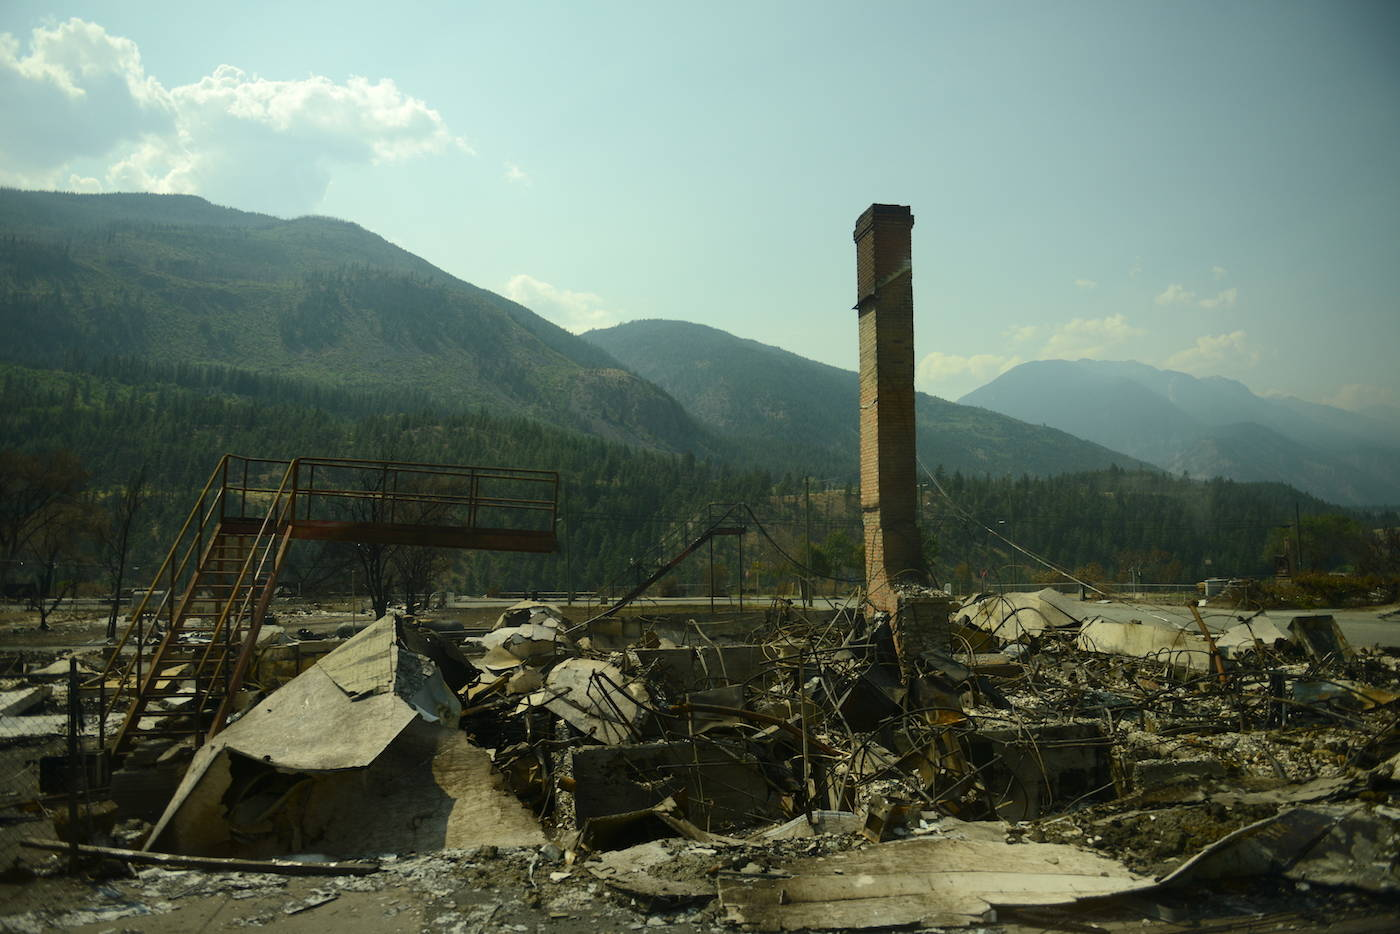 A chimney stands amid debris in Lytton, B.C. on Friday, July 9, 2021, nine days after a wildfire ripped through the village on June 30, 2021. (Jenna Hauck/ Black Press Media)